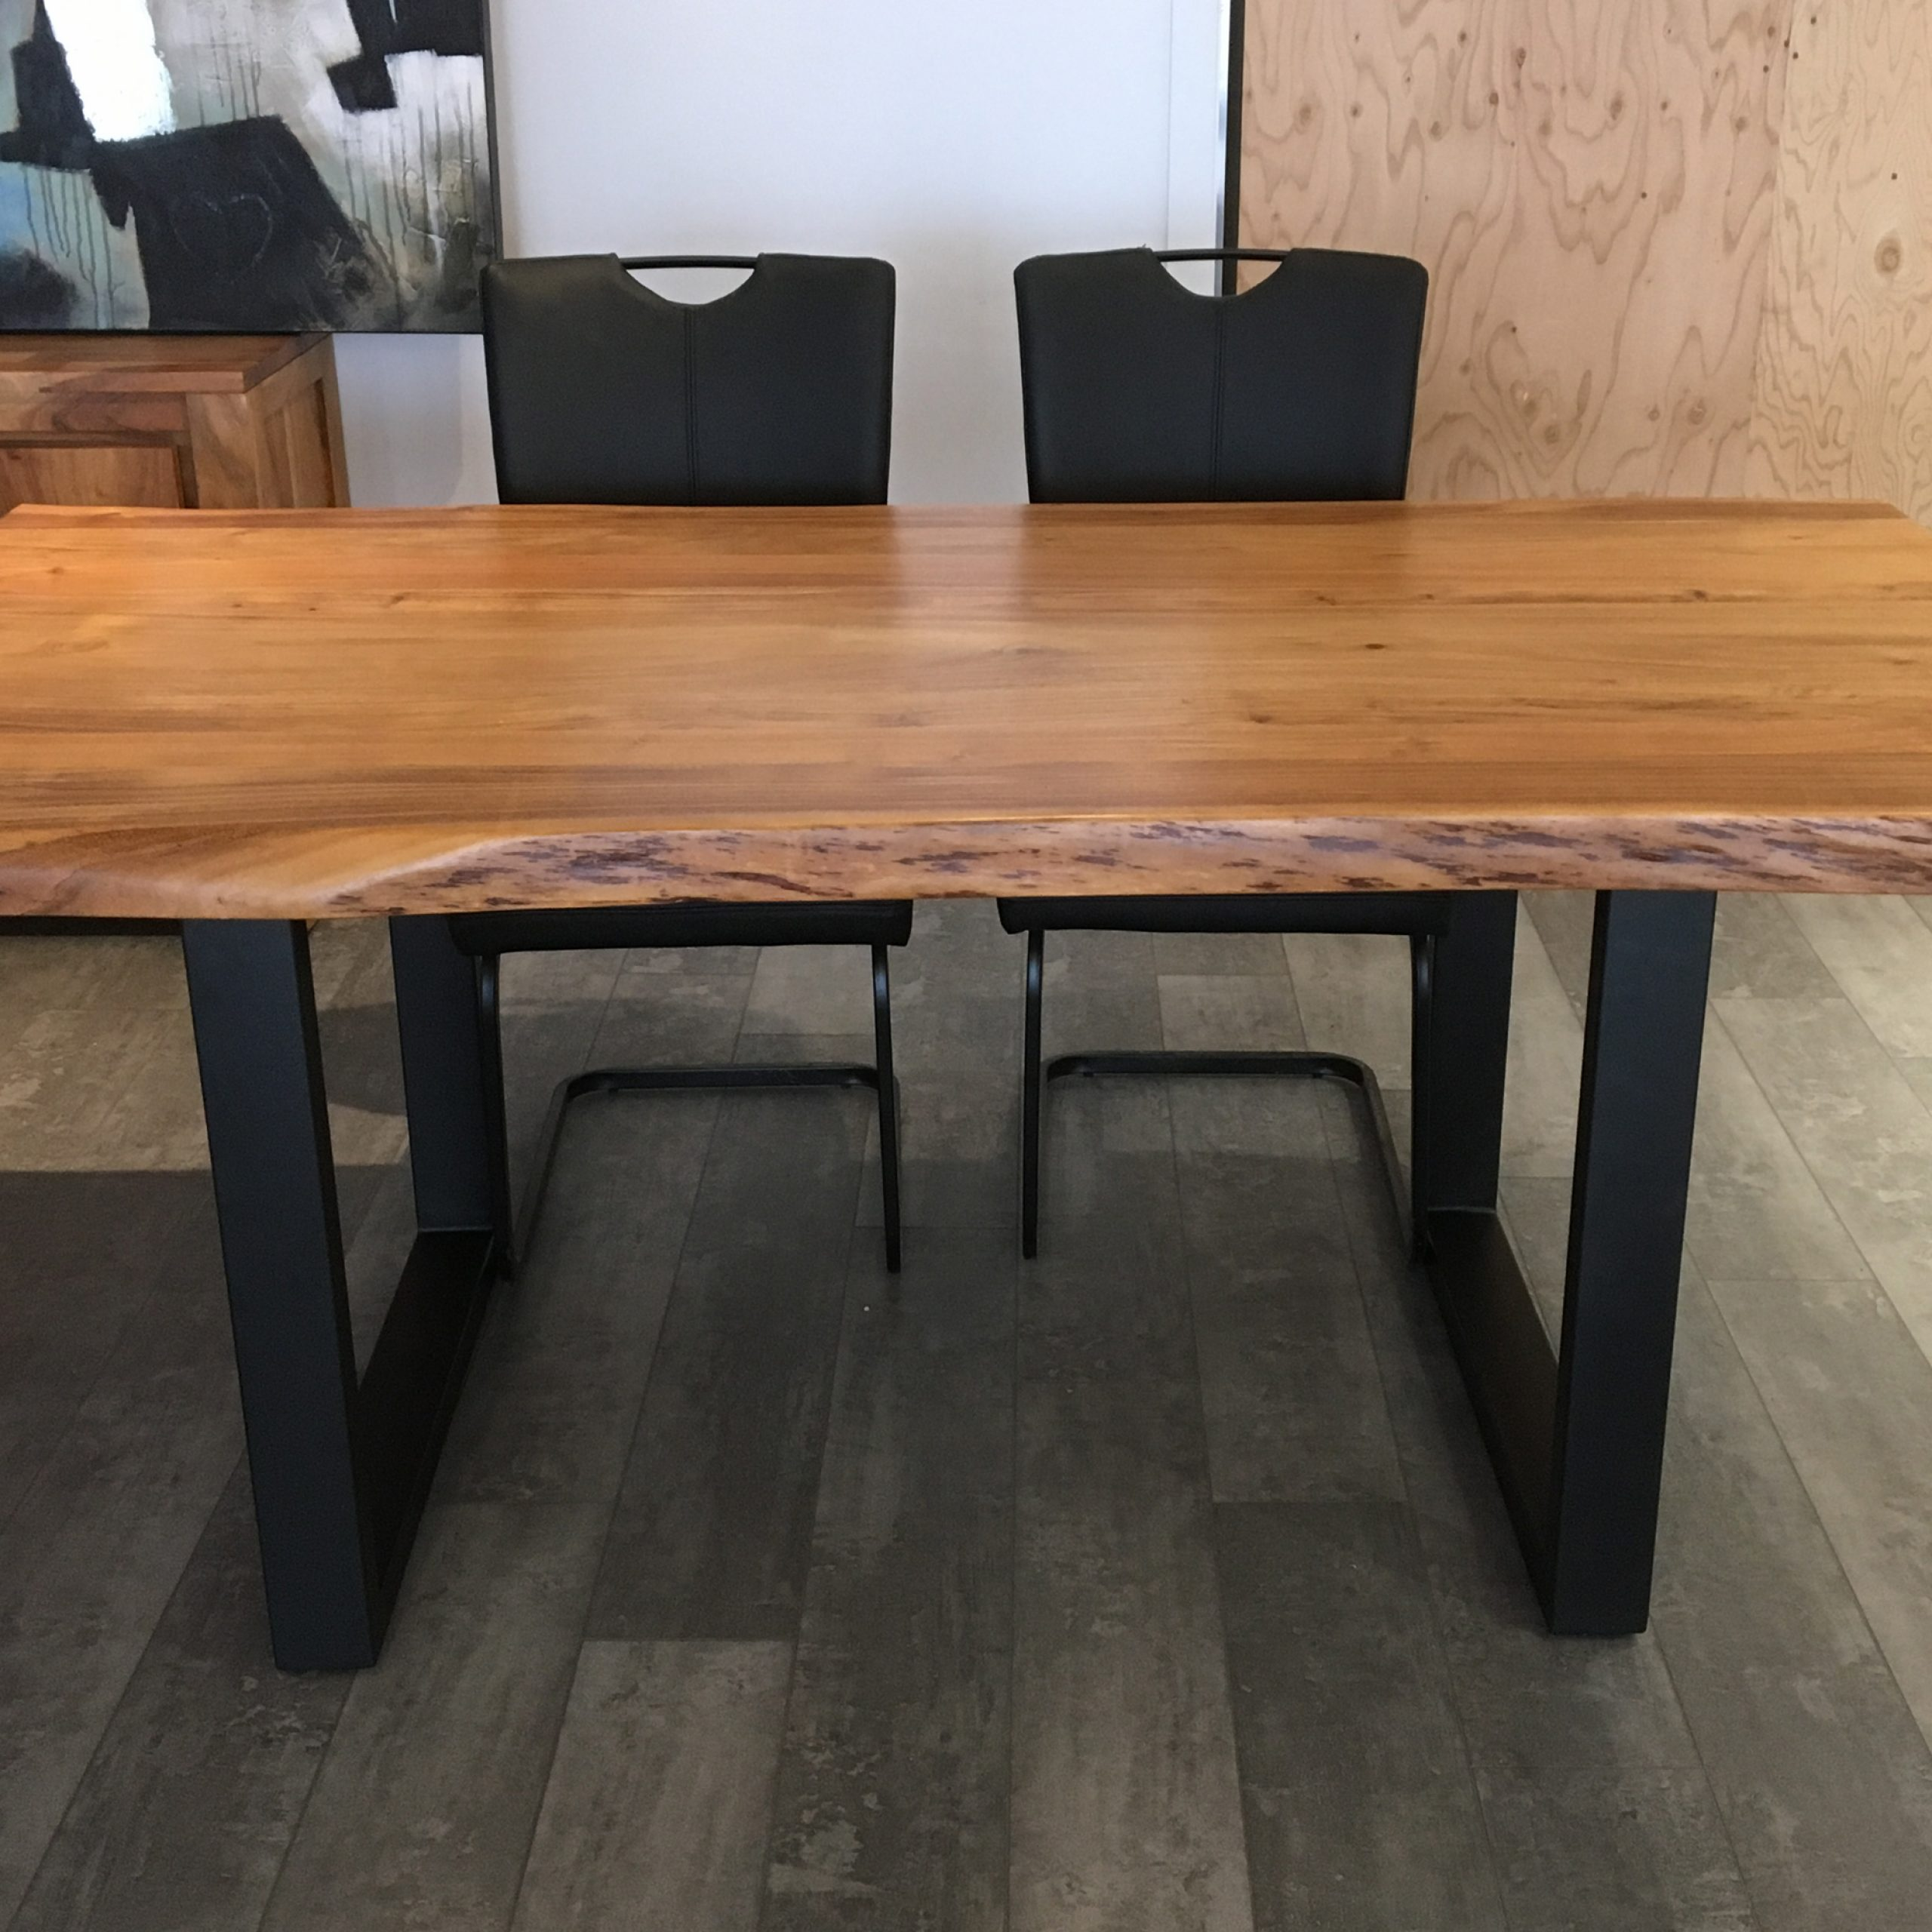 "Corcoran Acacia Live Edge Dining Table With Black U Legs – 72"" Throughout Most Recent Dining Tables With Black U Legs (View 9 of 25)"